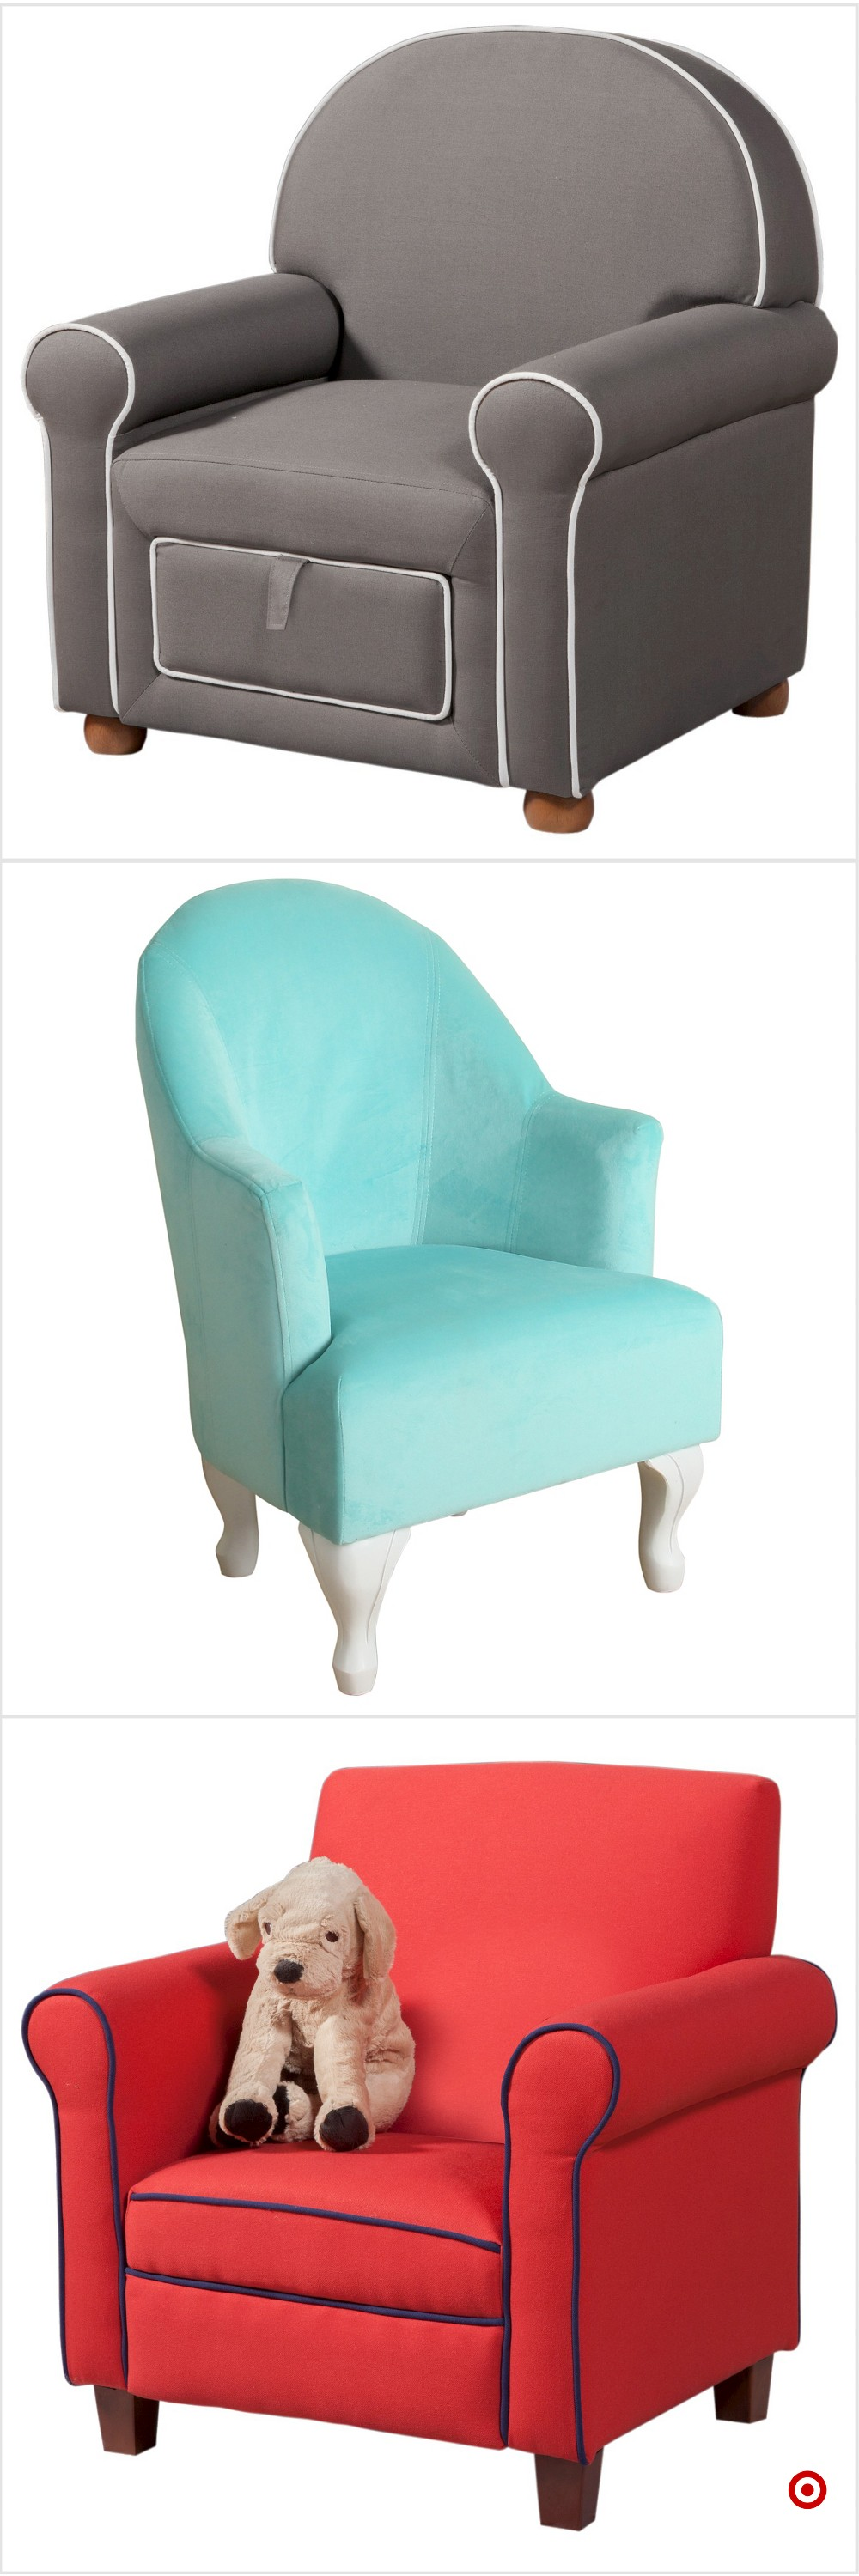 Shop Target for kids upholstered chair you will love at great low ...